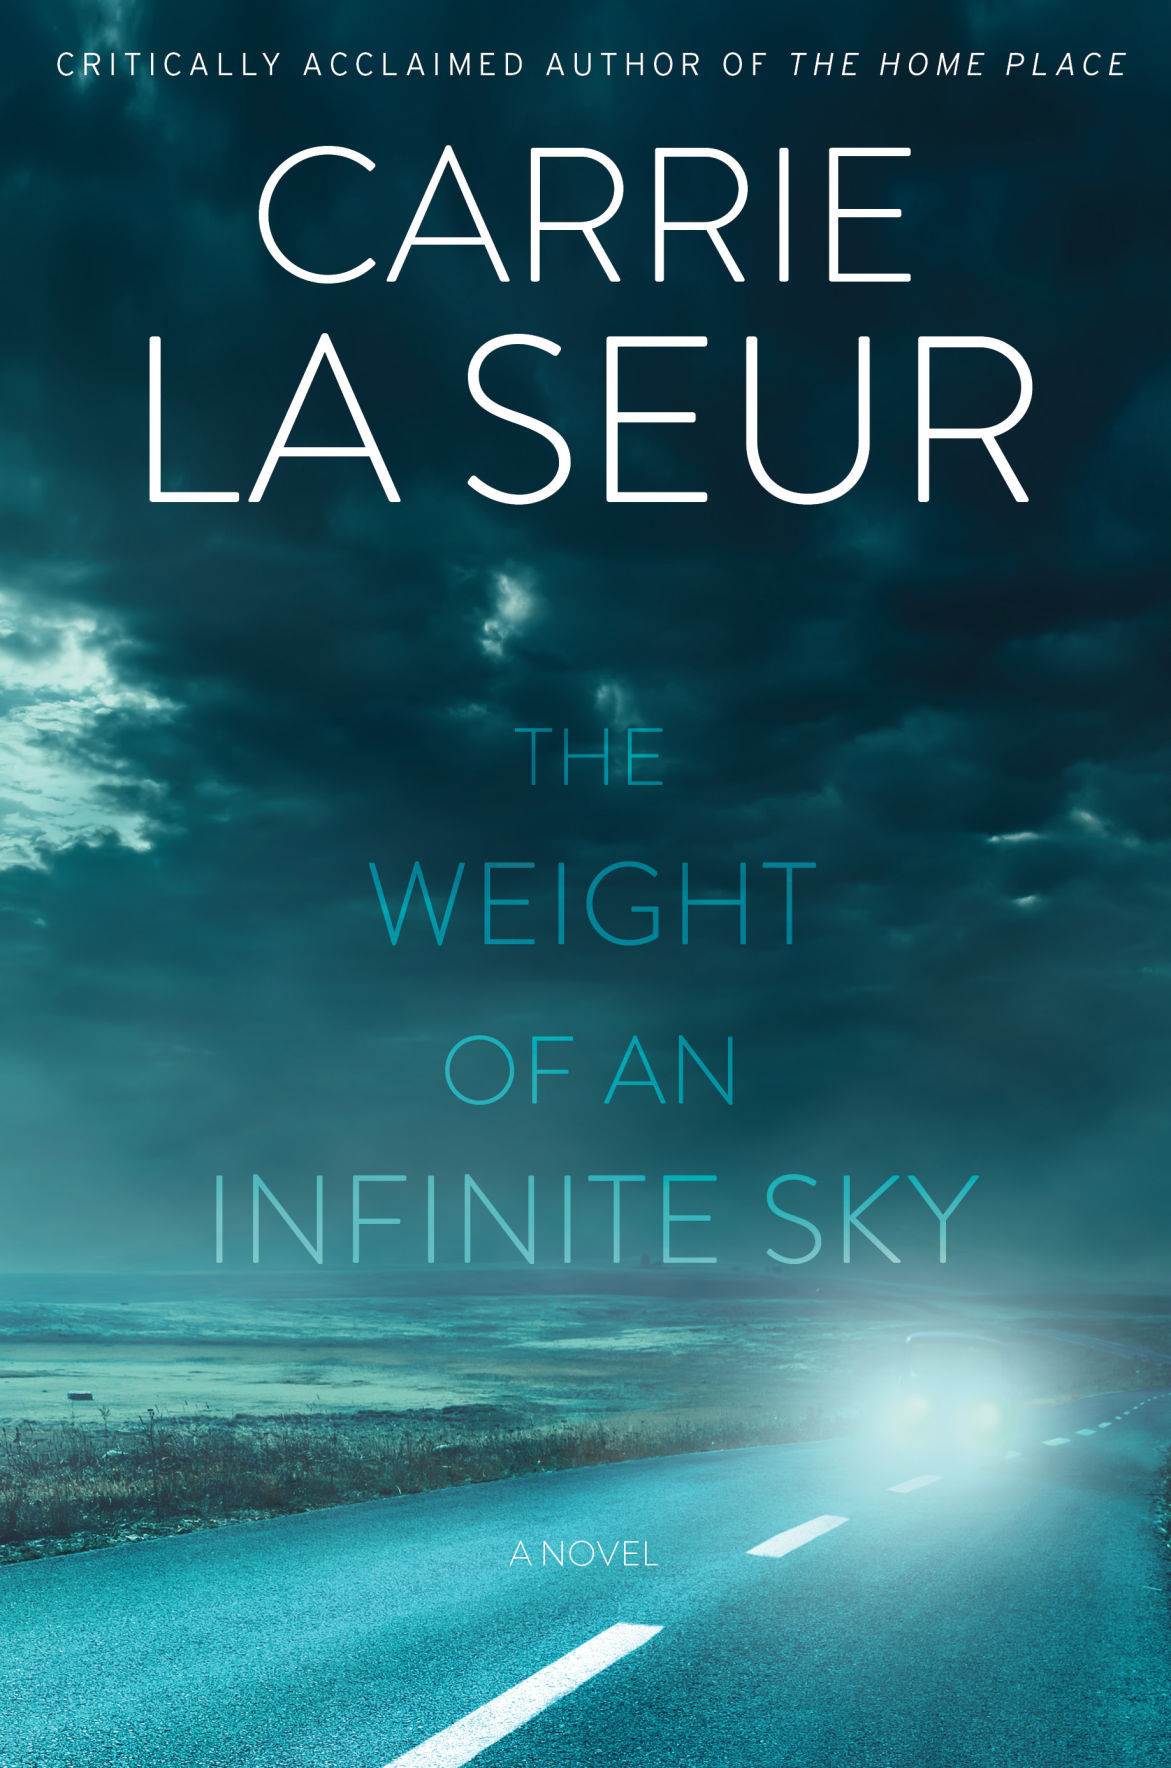 'The Weight of An Infinite Sky,' by Carrie La Seur